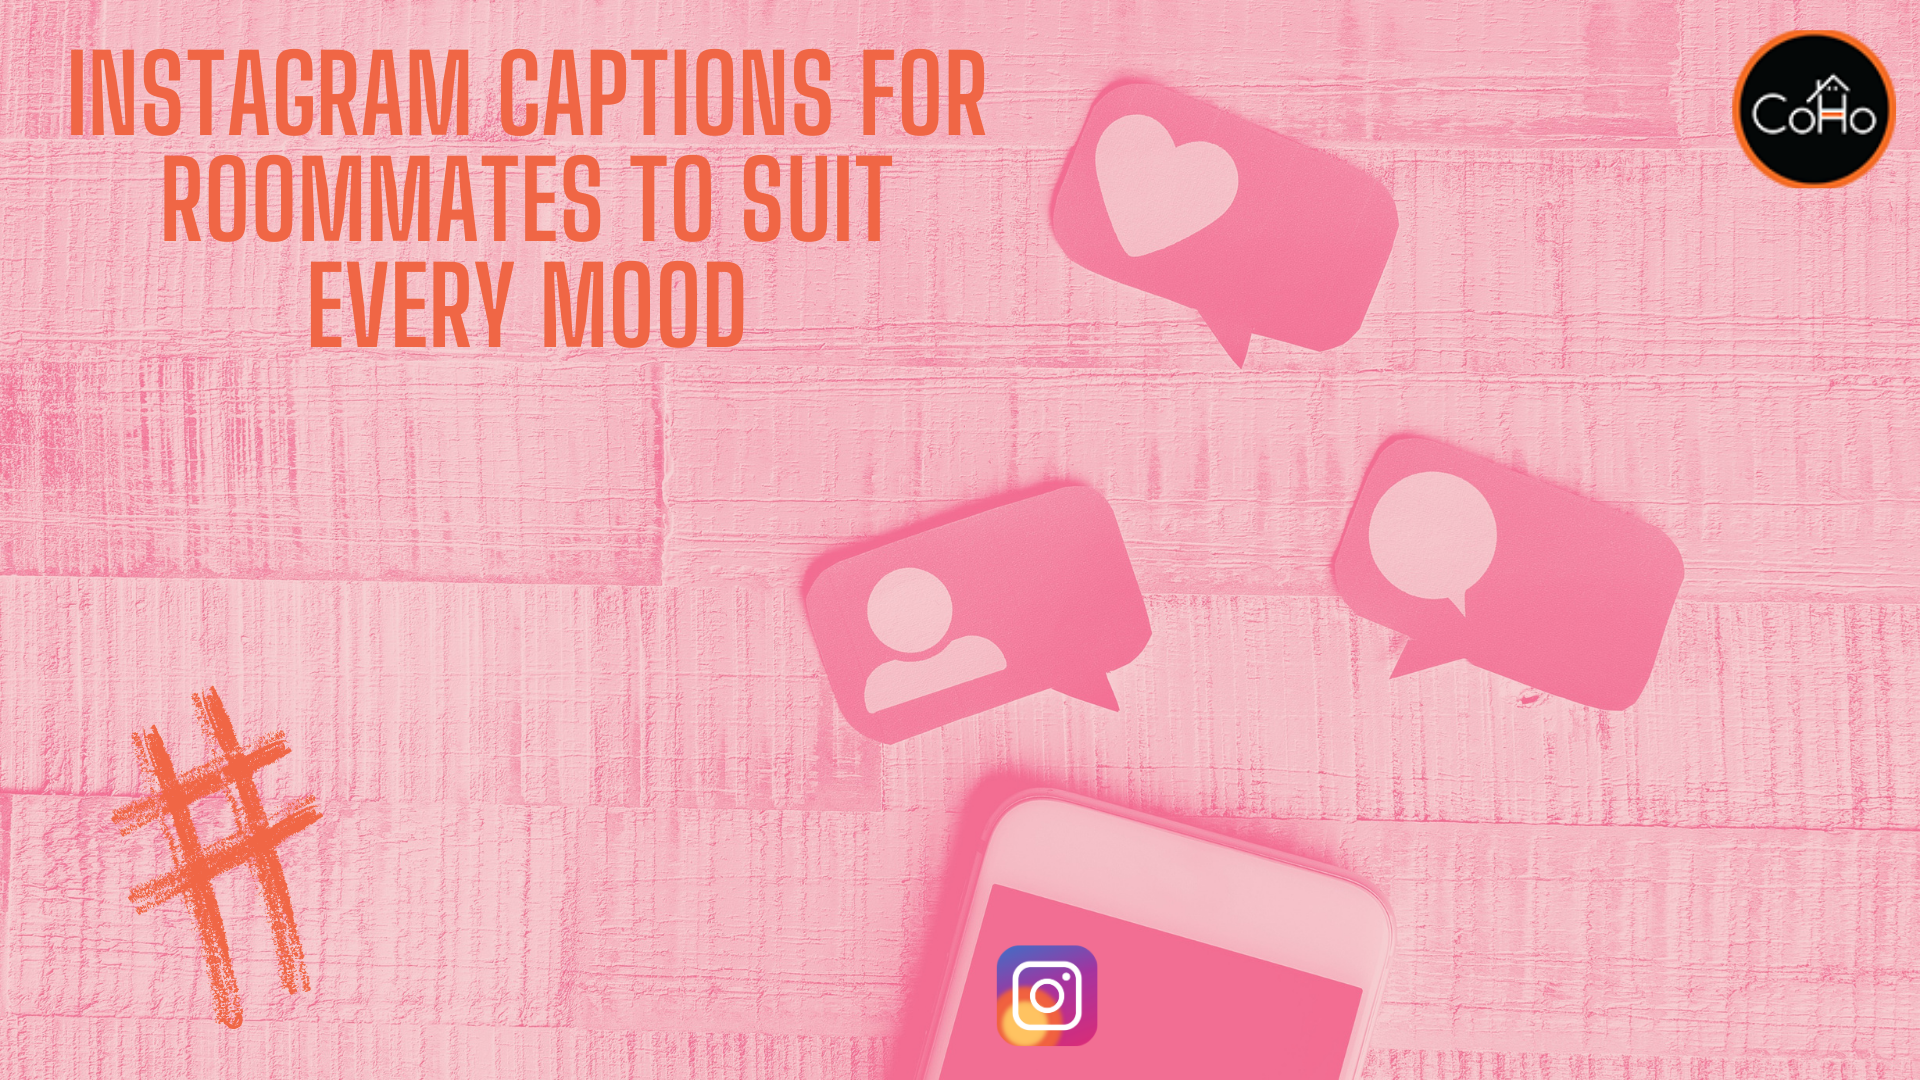 8 Instagram captions for roommates to suit every mood